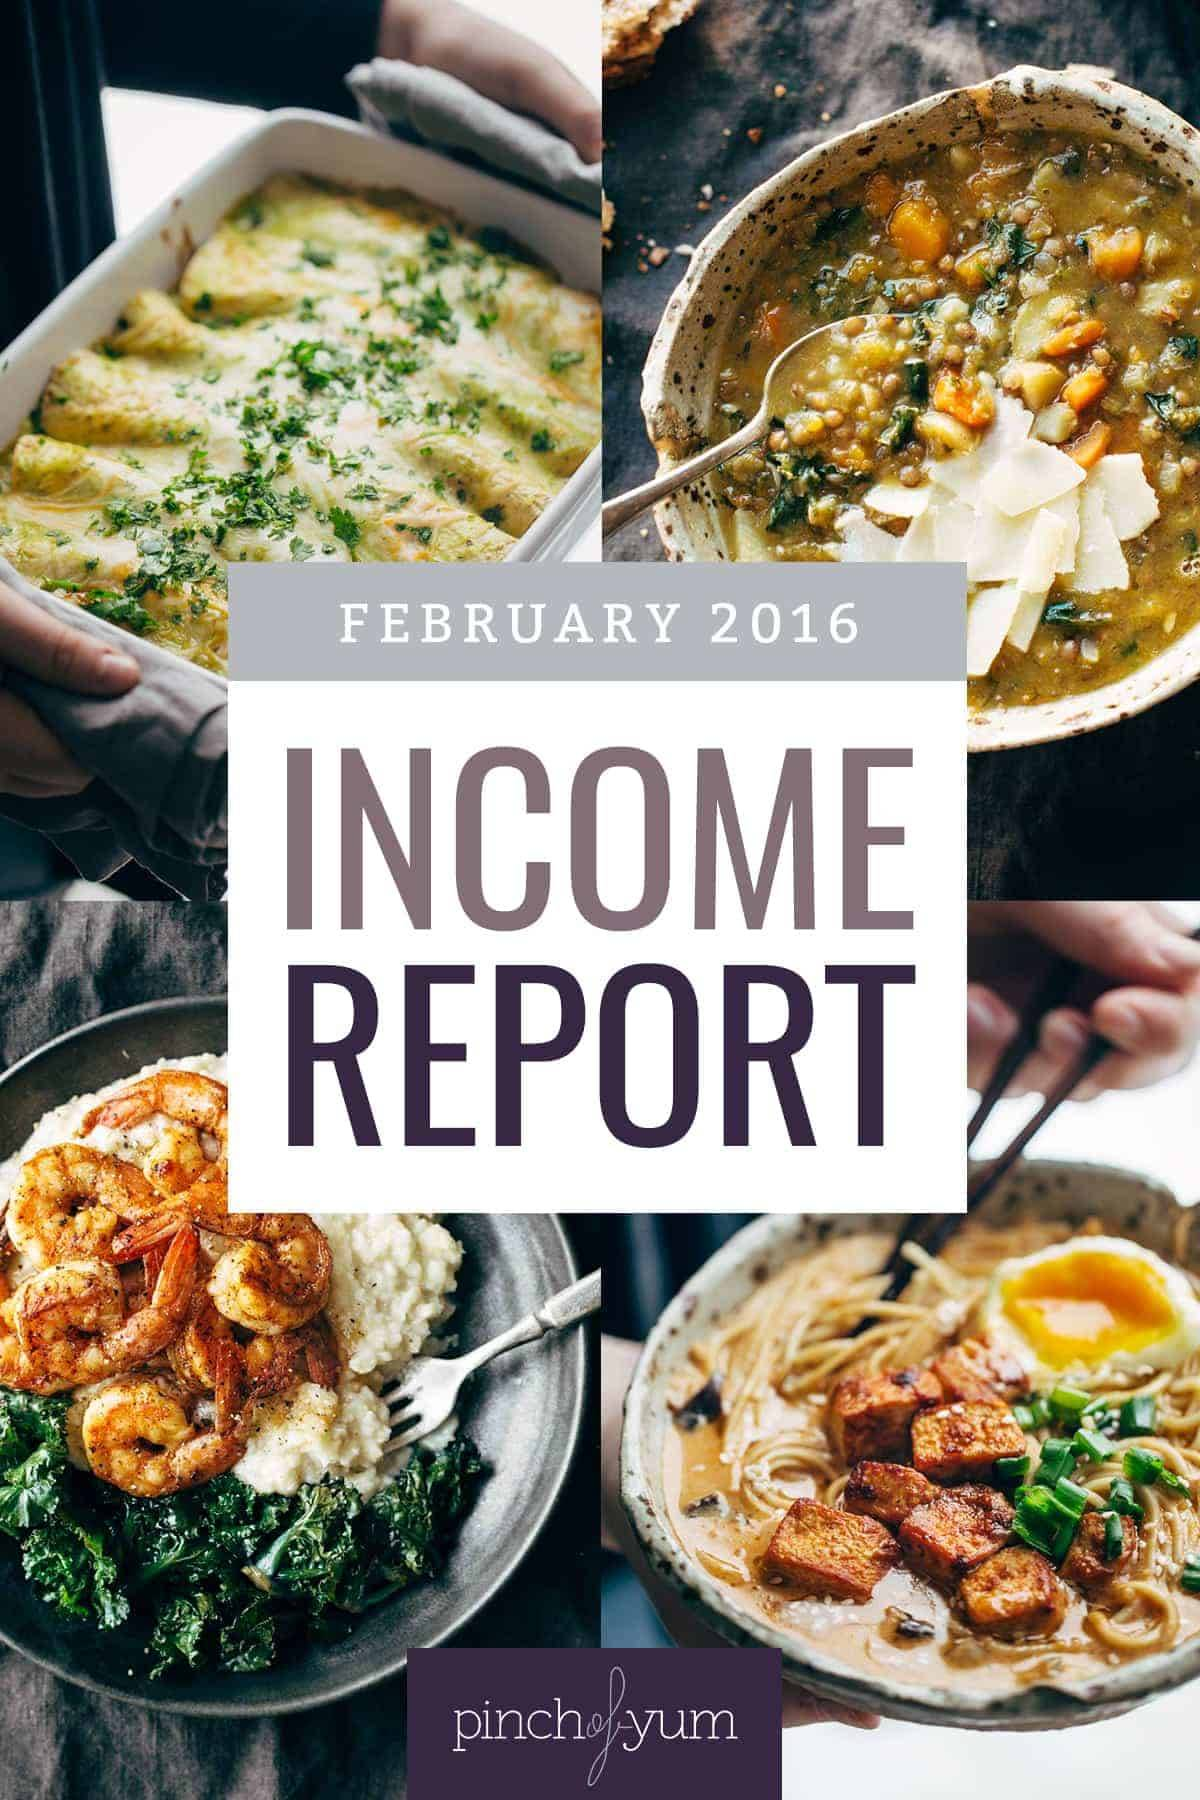 February Traffic and Income